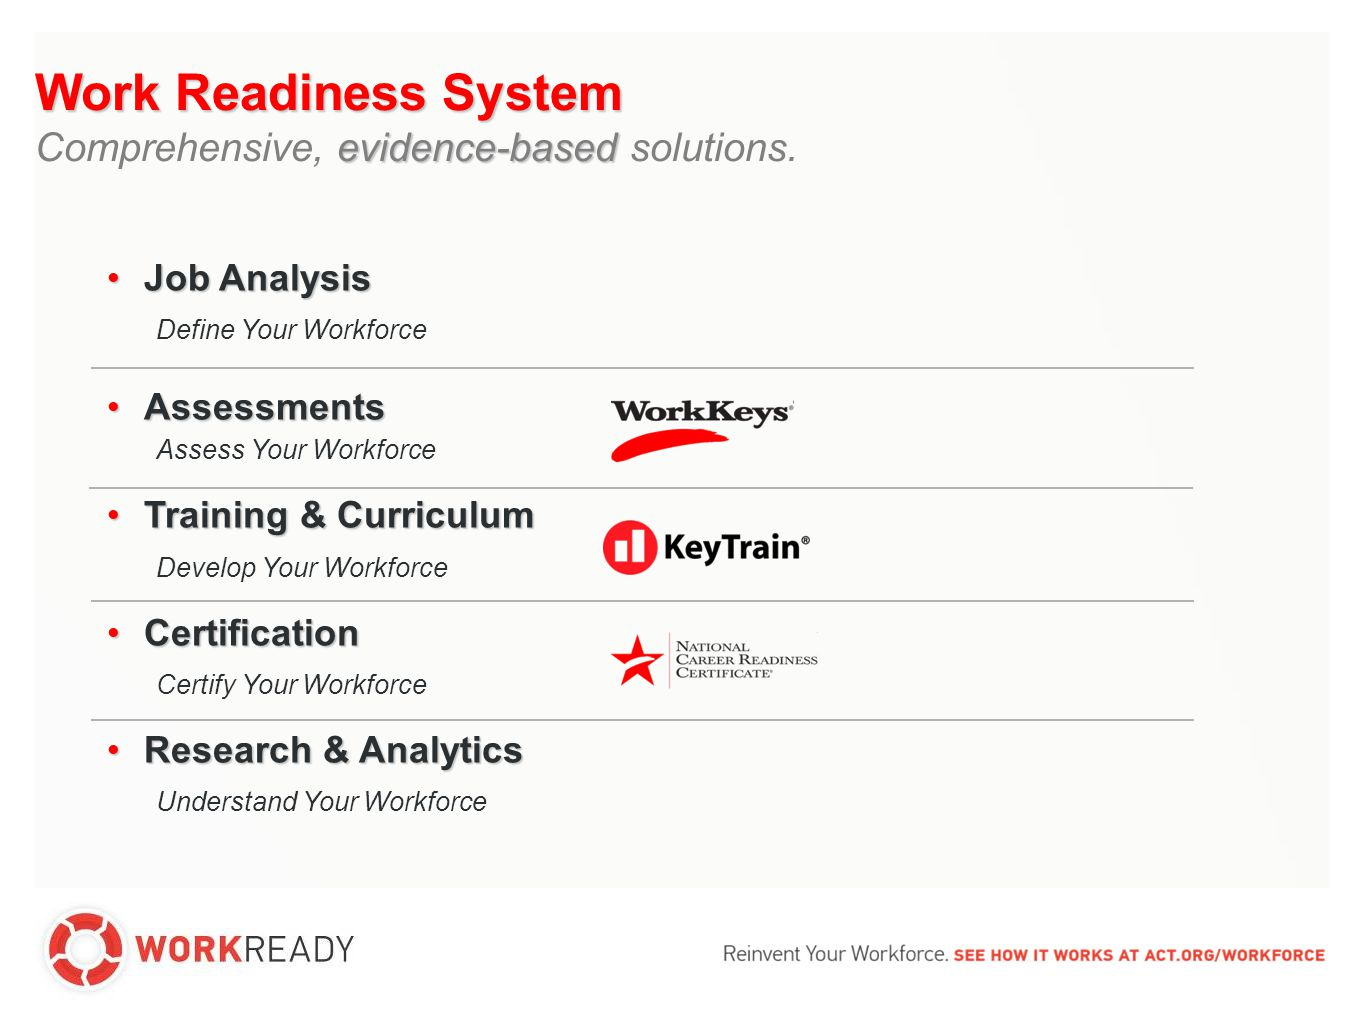 Job AnalysisJob Analysis Define Your Workforce AssessmentsAssessments Assess Your Workforce Training & CurriculumTraining & Curriculum Develop Your Workforce CertificationCertification Certify Your Workforce Research & AnalyticsResearch & Analytics Understand Your Workforce Work Readiness System evidence-based Comprehensive, evidence-based solutions.